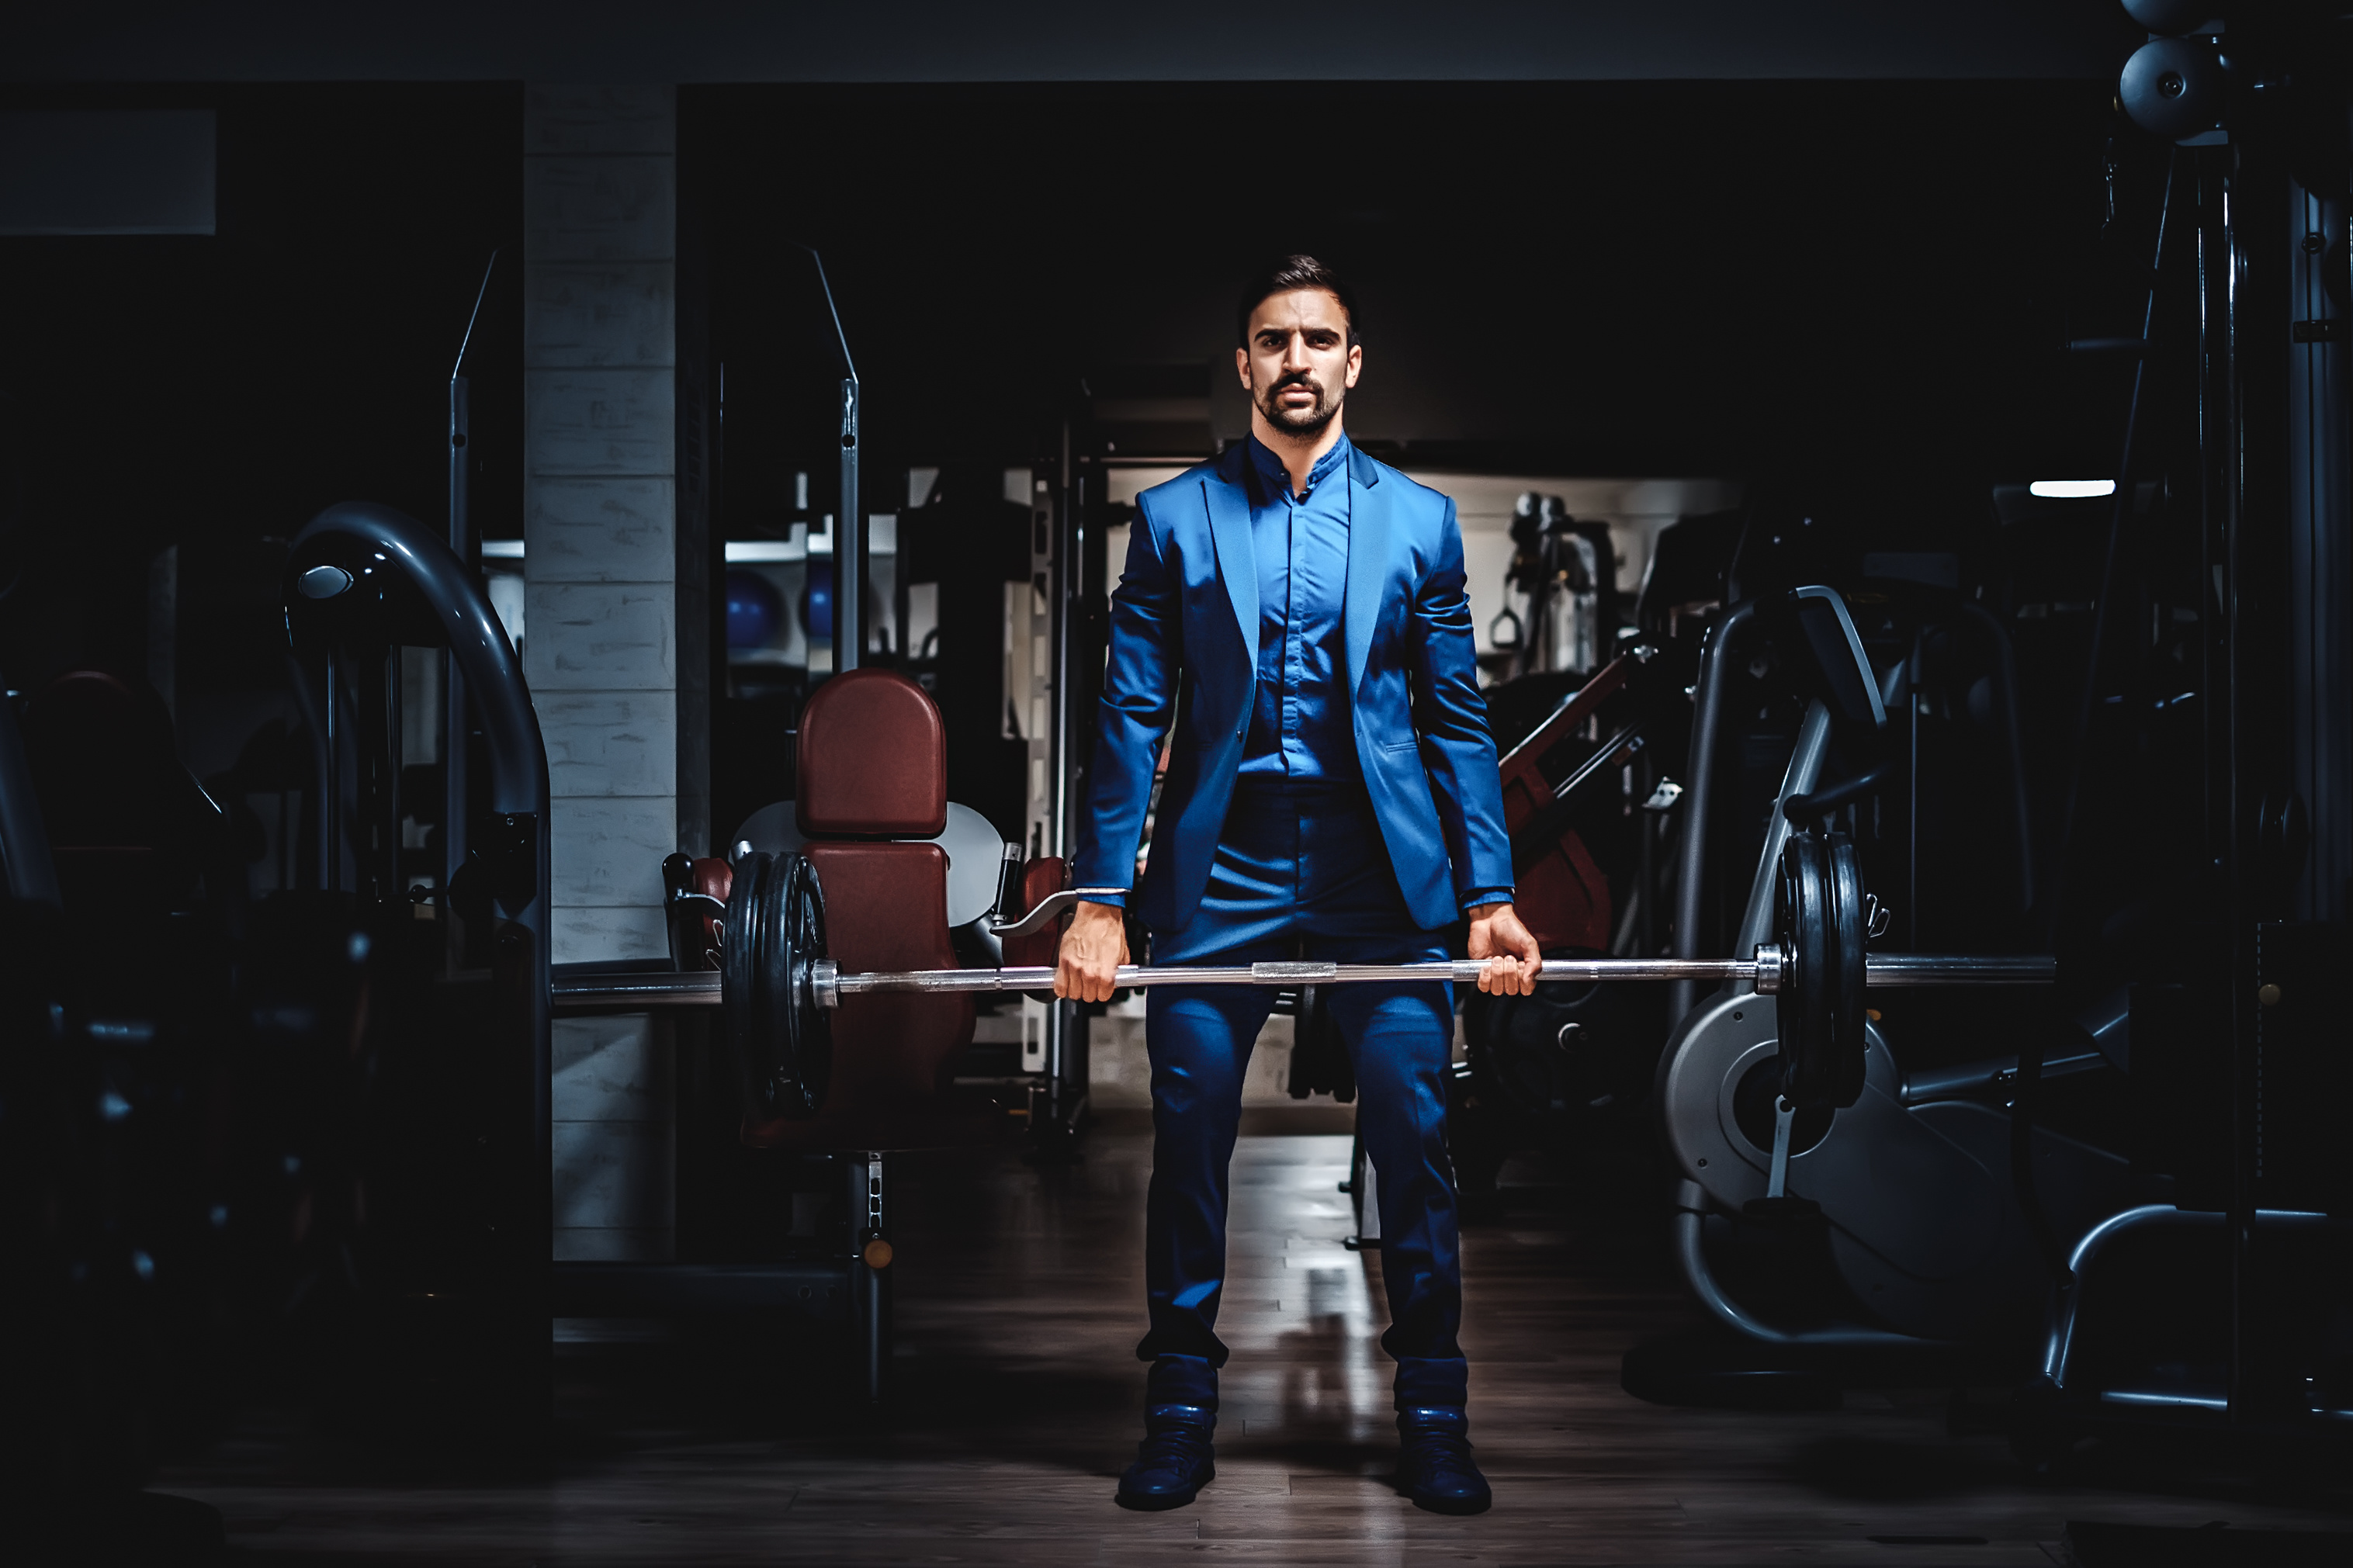 Man in suit lifting heavy weight